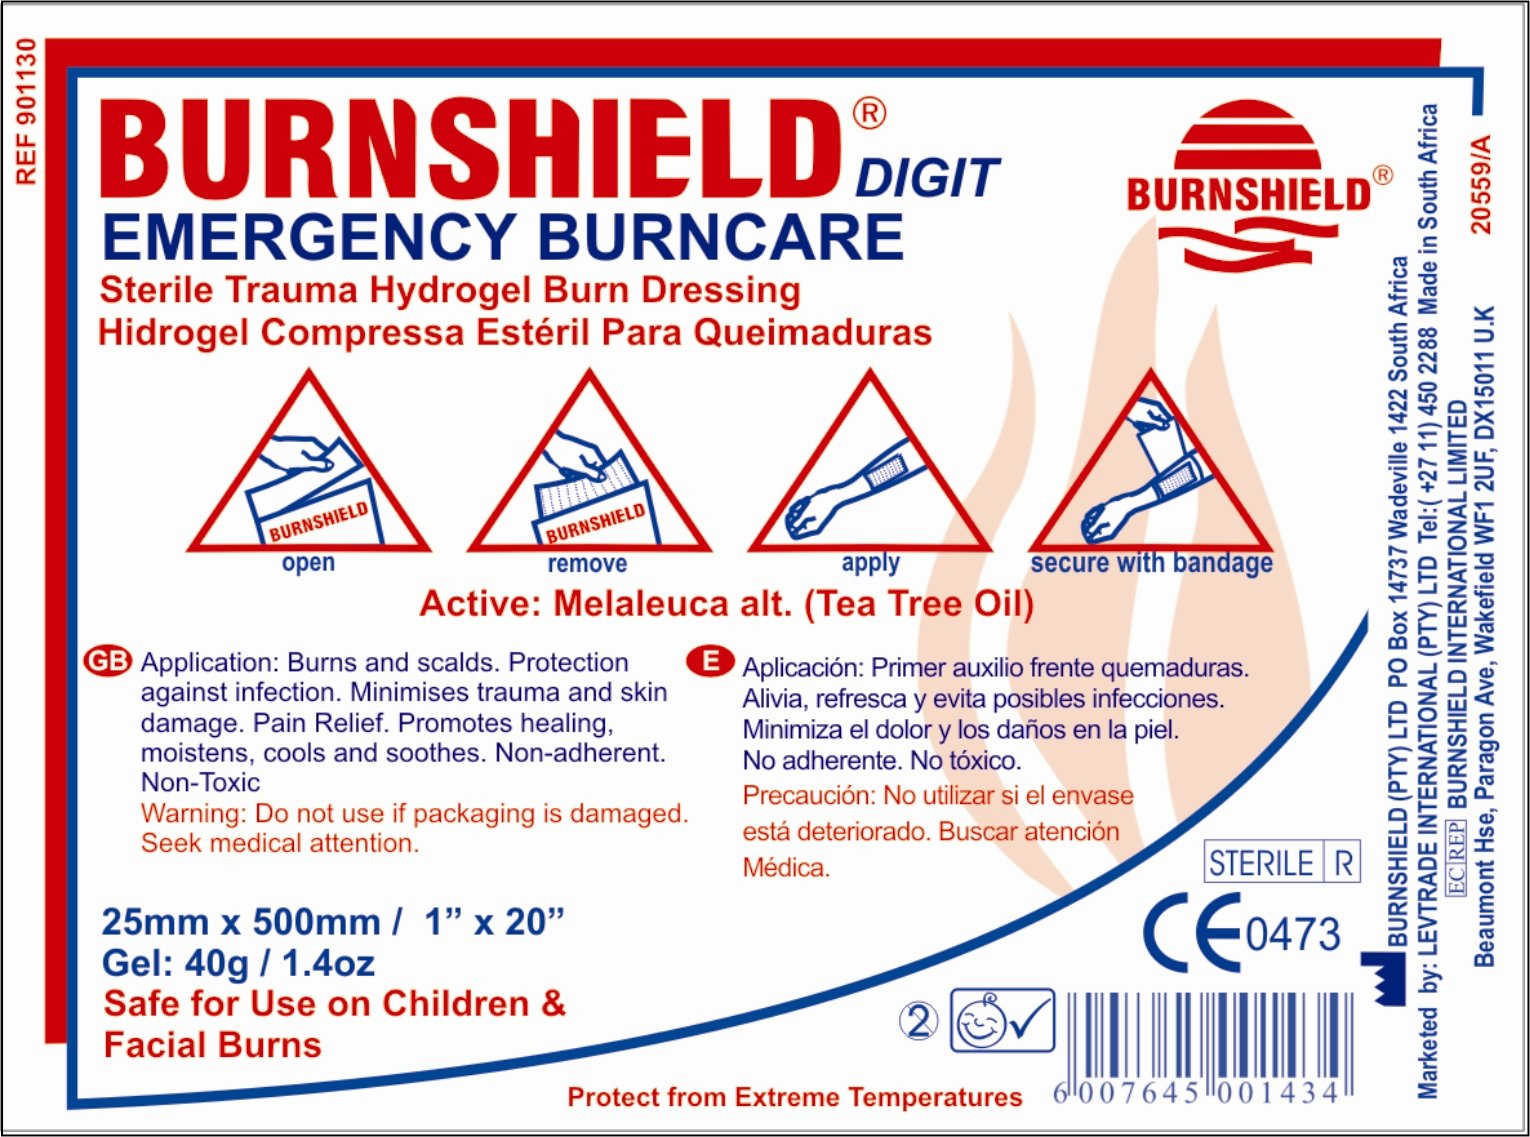 Burnshield Premium Digit Emergency Burn Dressing For Fingers and Toes 1'' x 20'' Strip Fda Approved